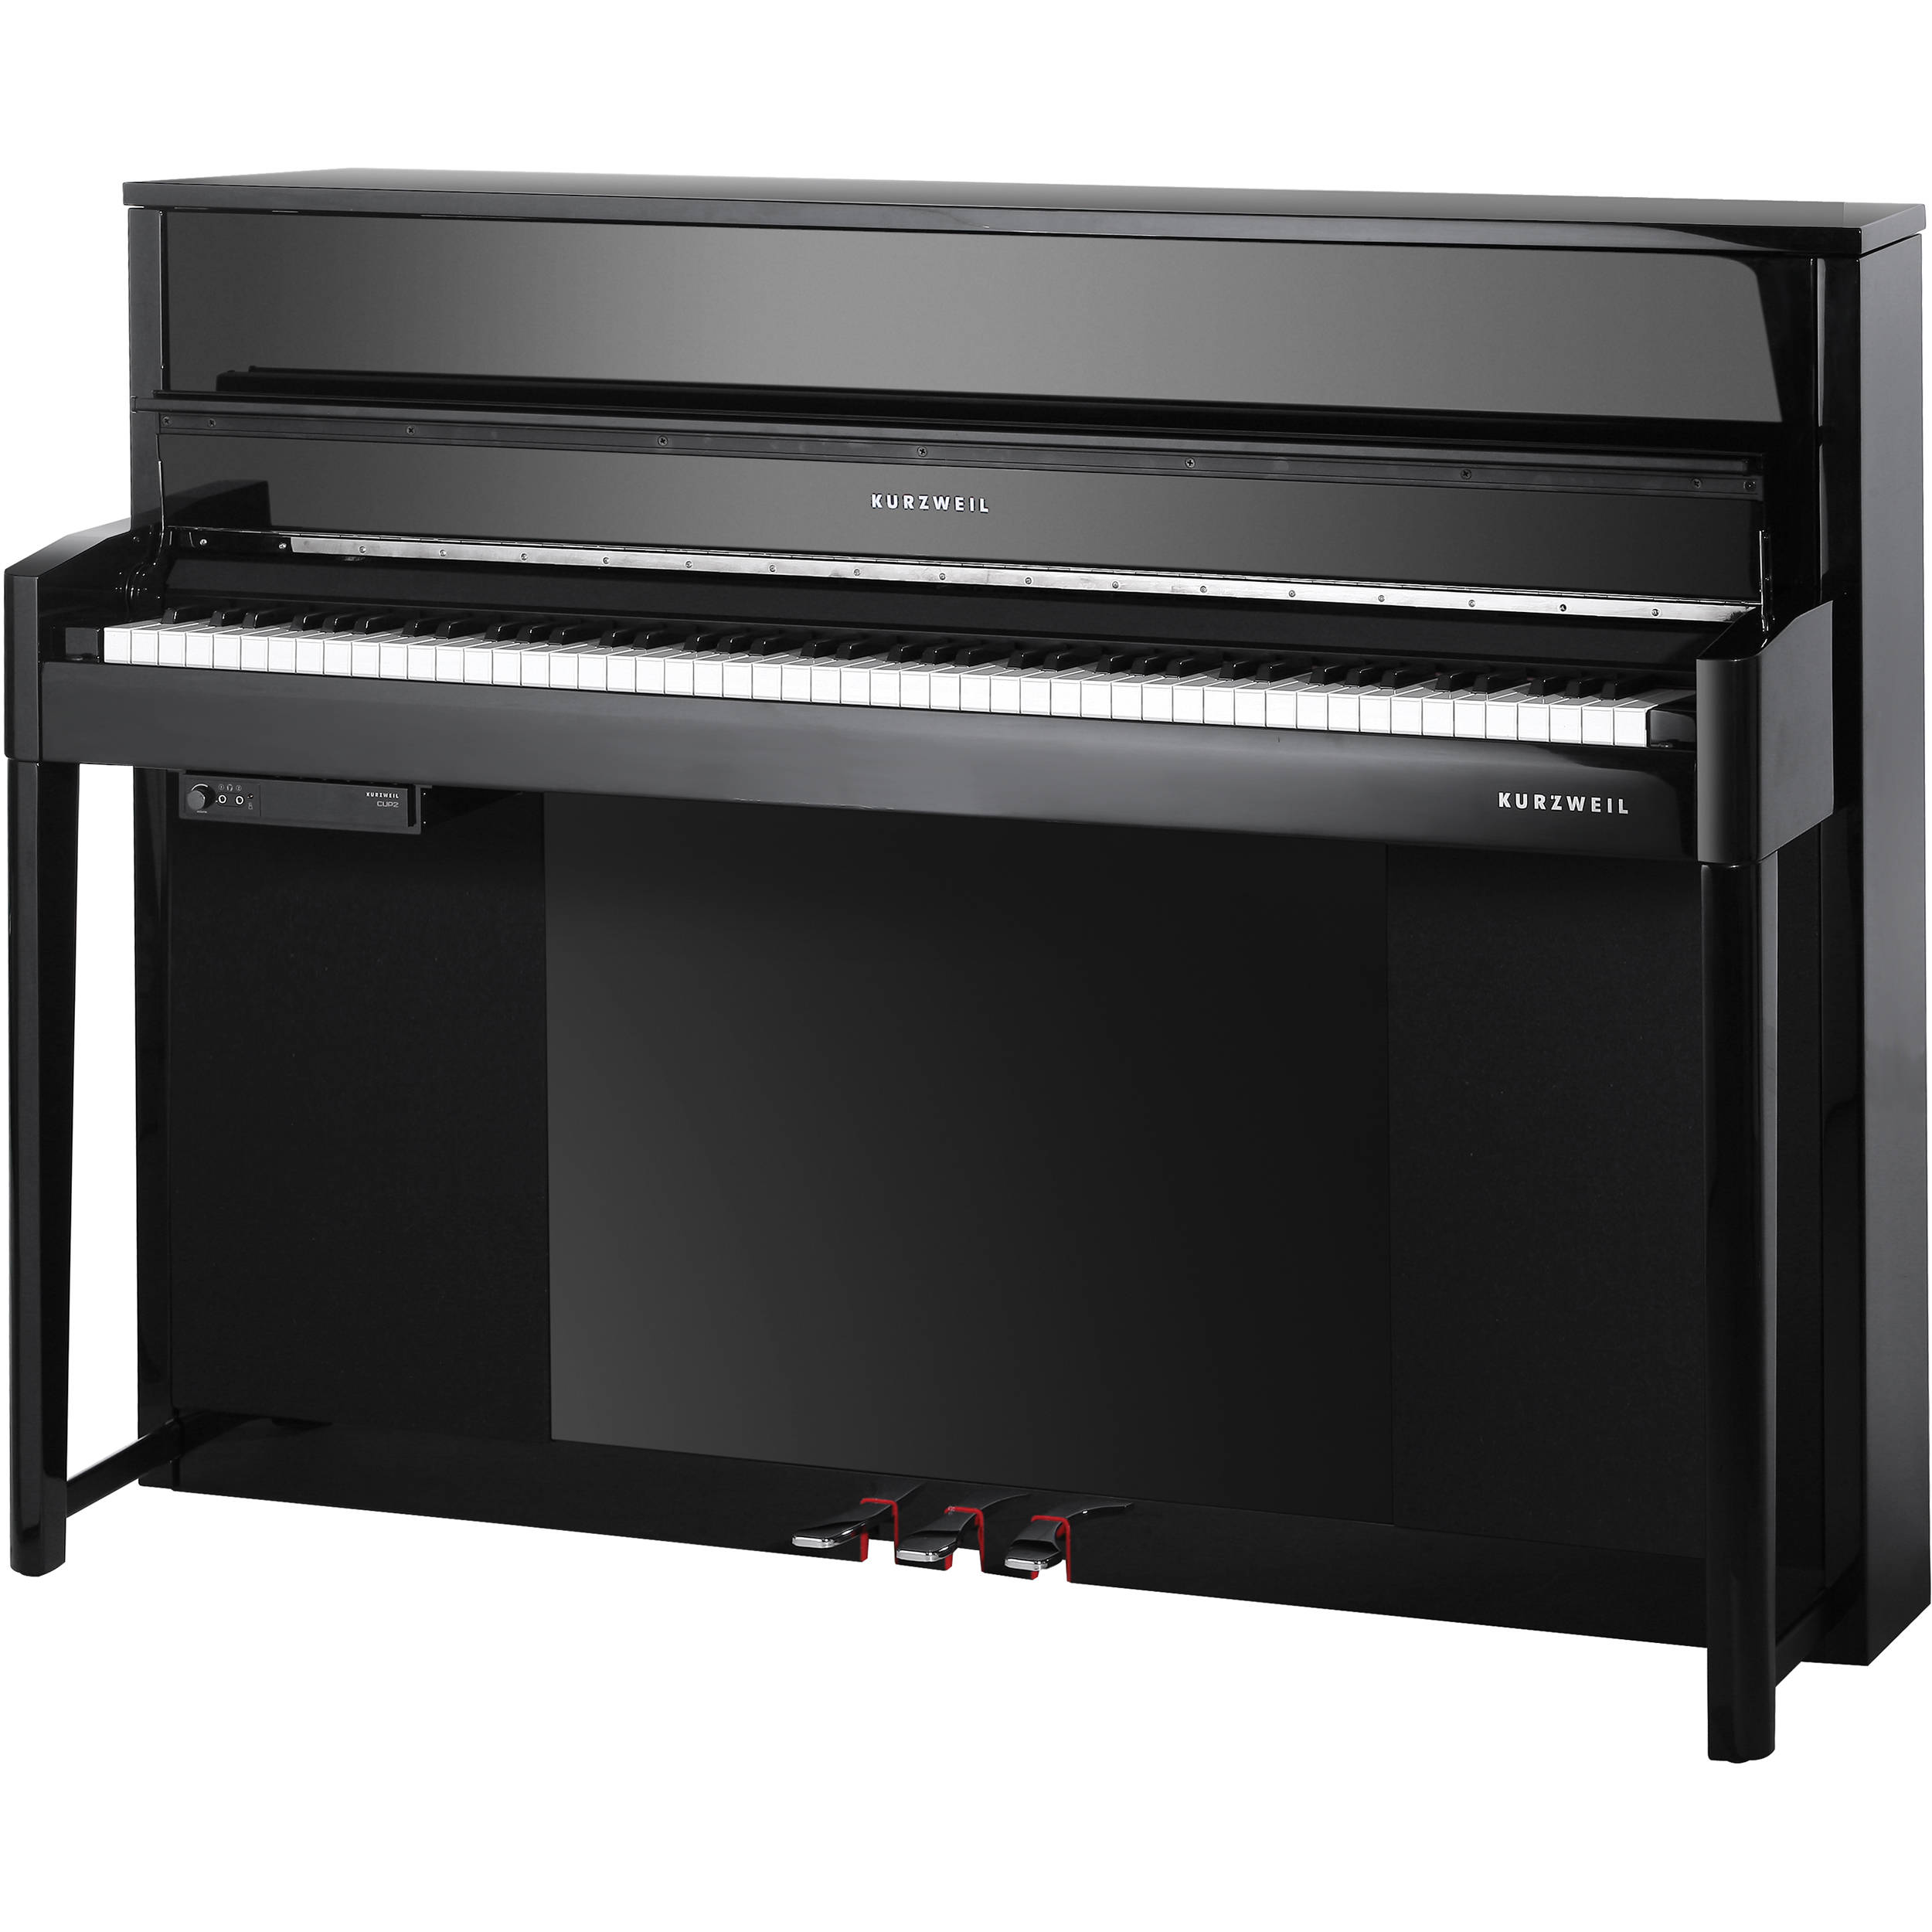 kurzweil cup2 bp compact upright digital piano black cup2 bp. Black Bedroom Furniture Sets. Home Design Ideas